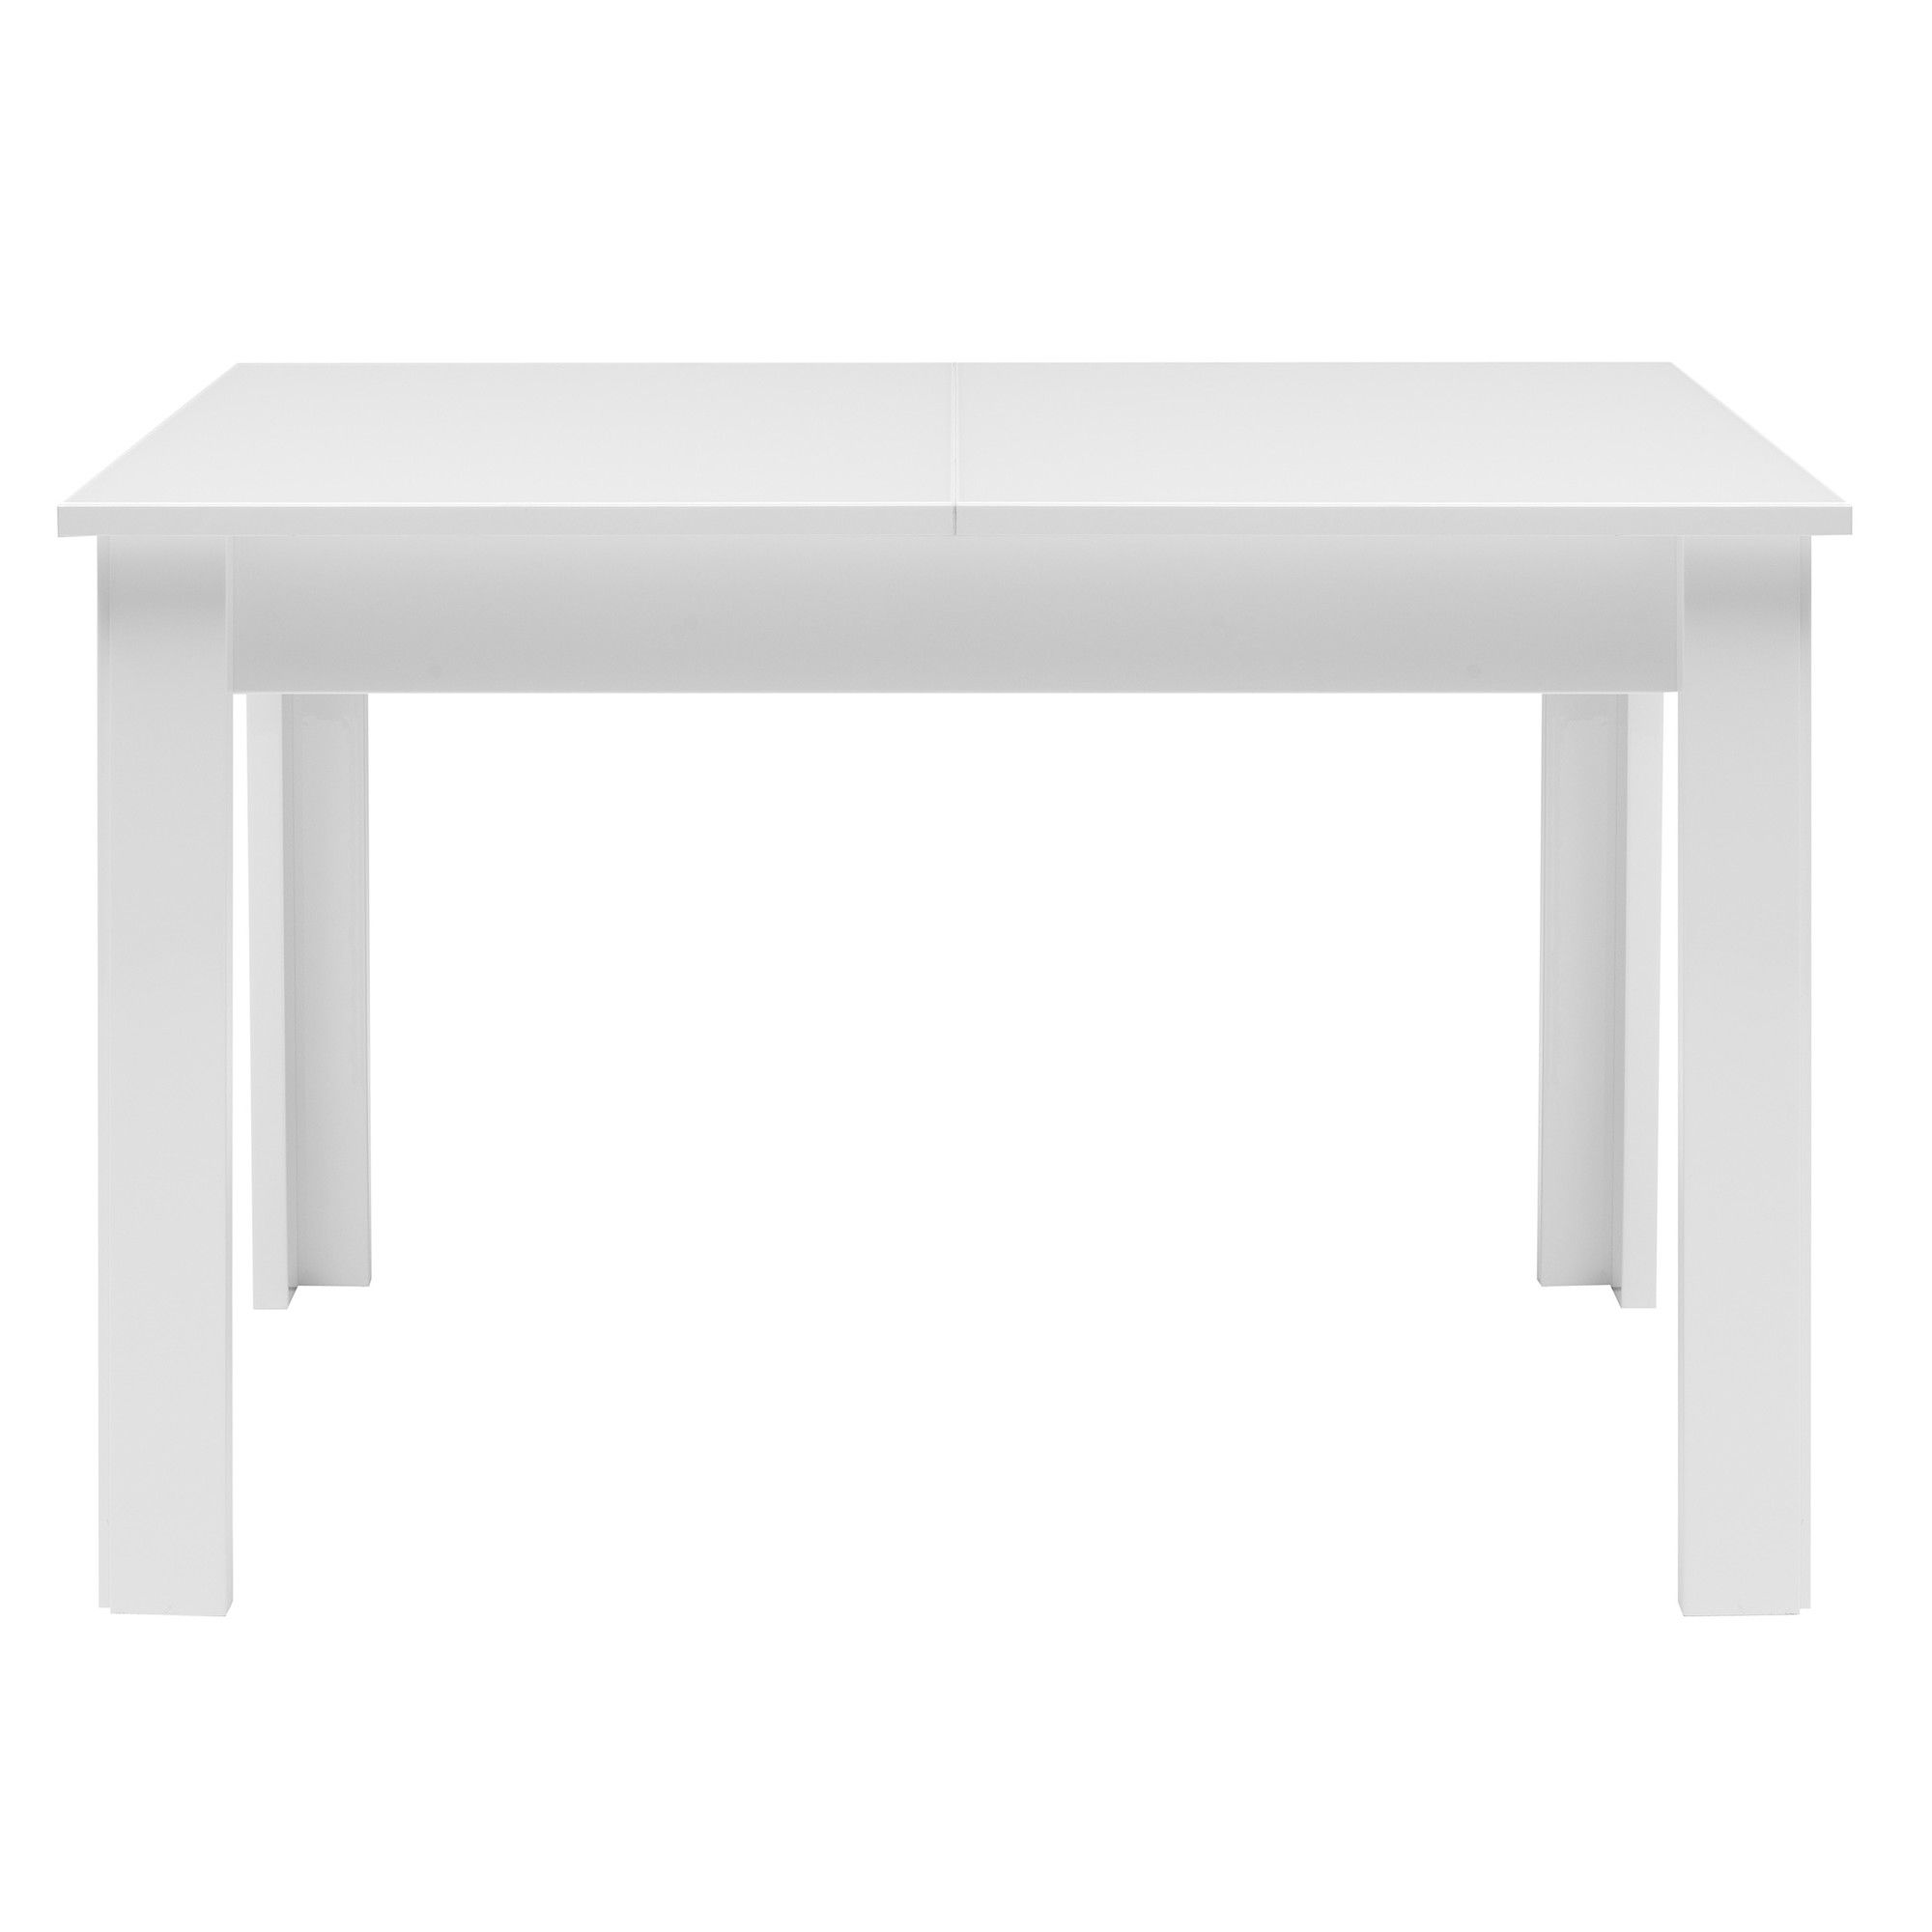 Caxton Manhattan Table with 6 Chairs in White Gloss at Tesco Direct